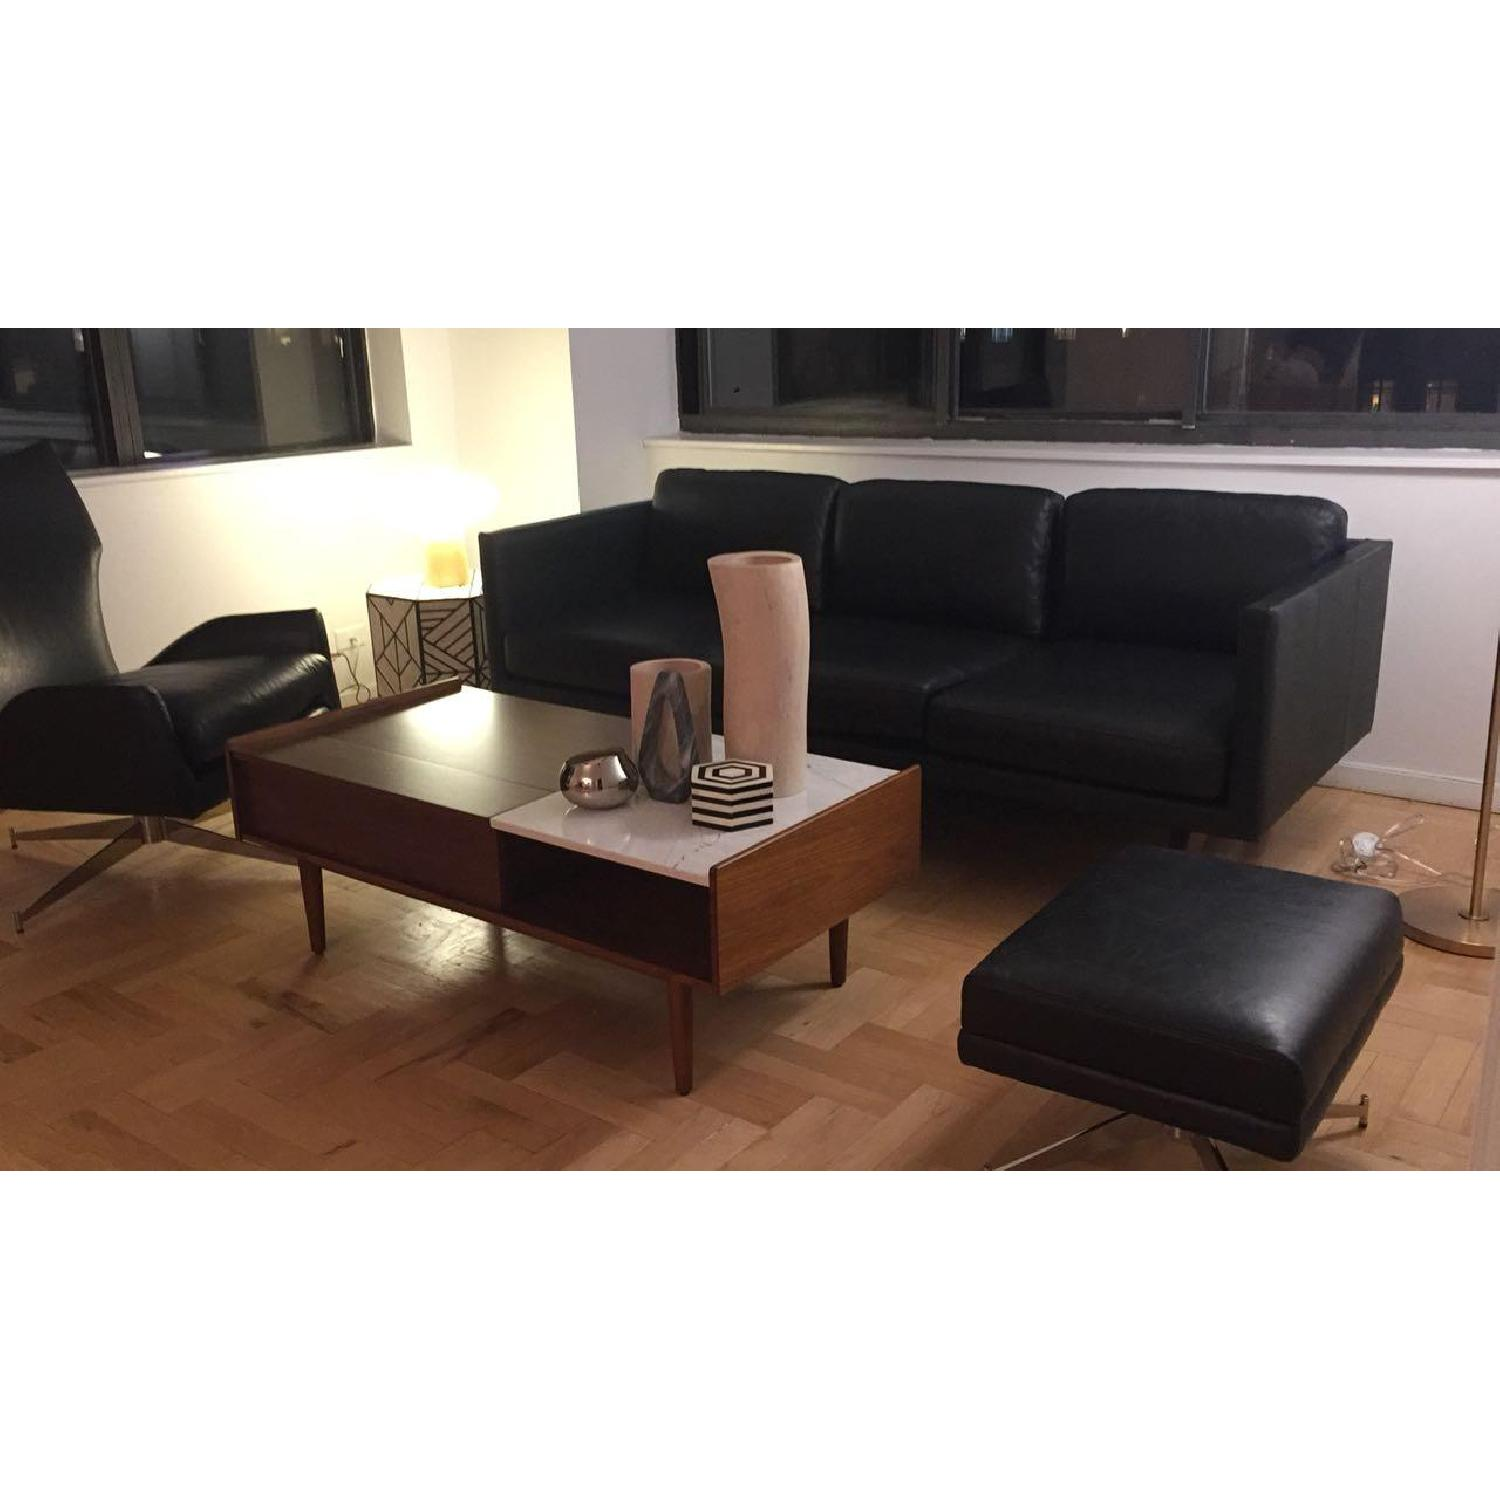 West Elm Brooklyn Down-Filled Leather Sofa - image-2